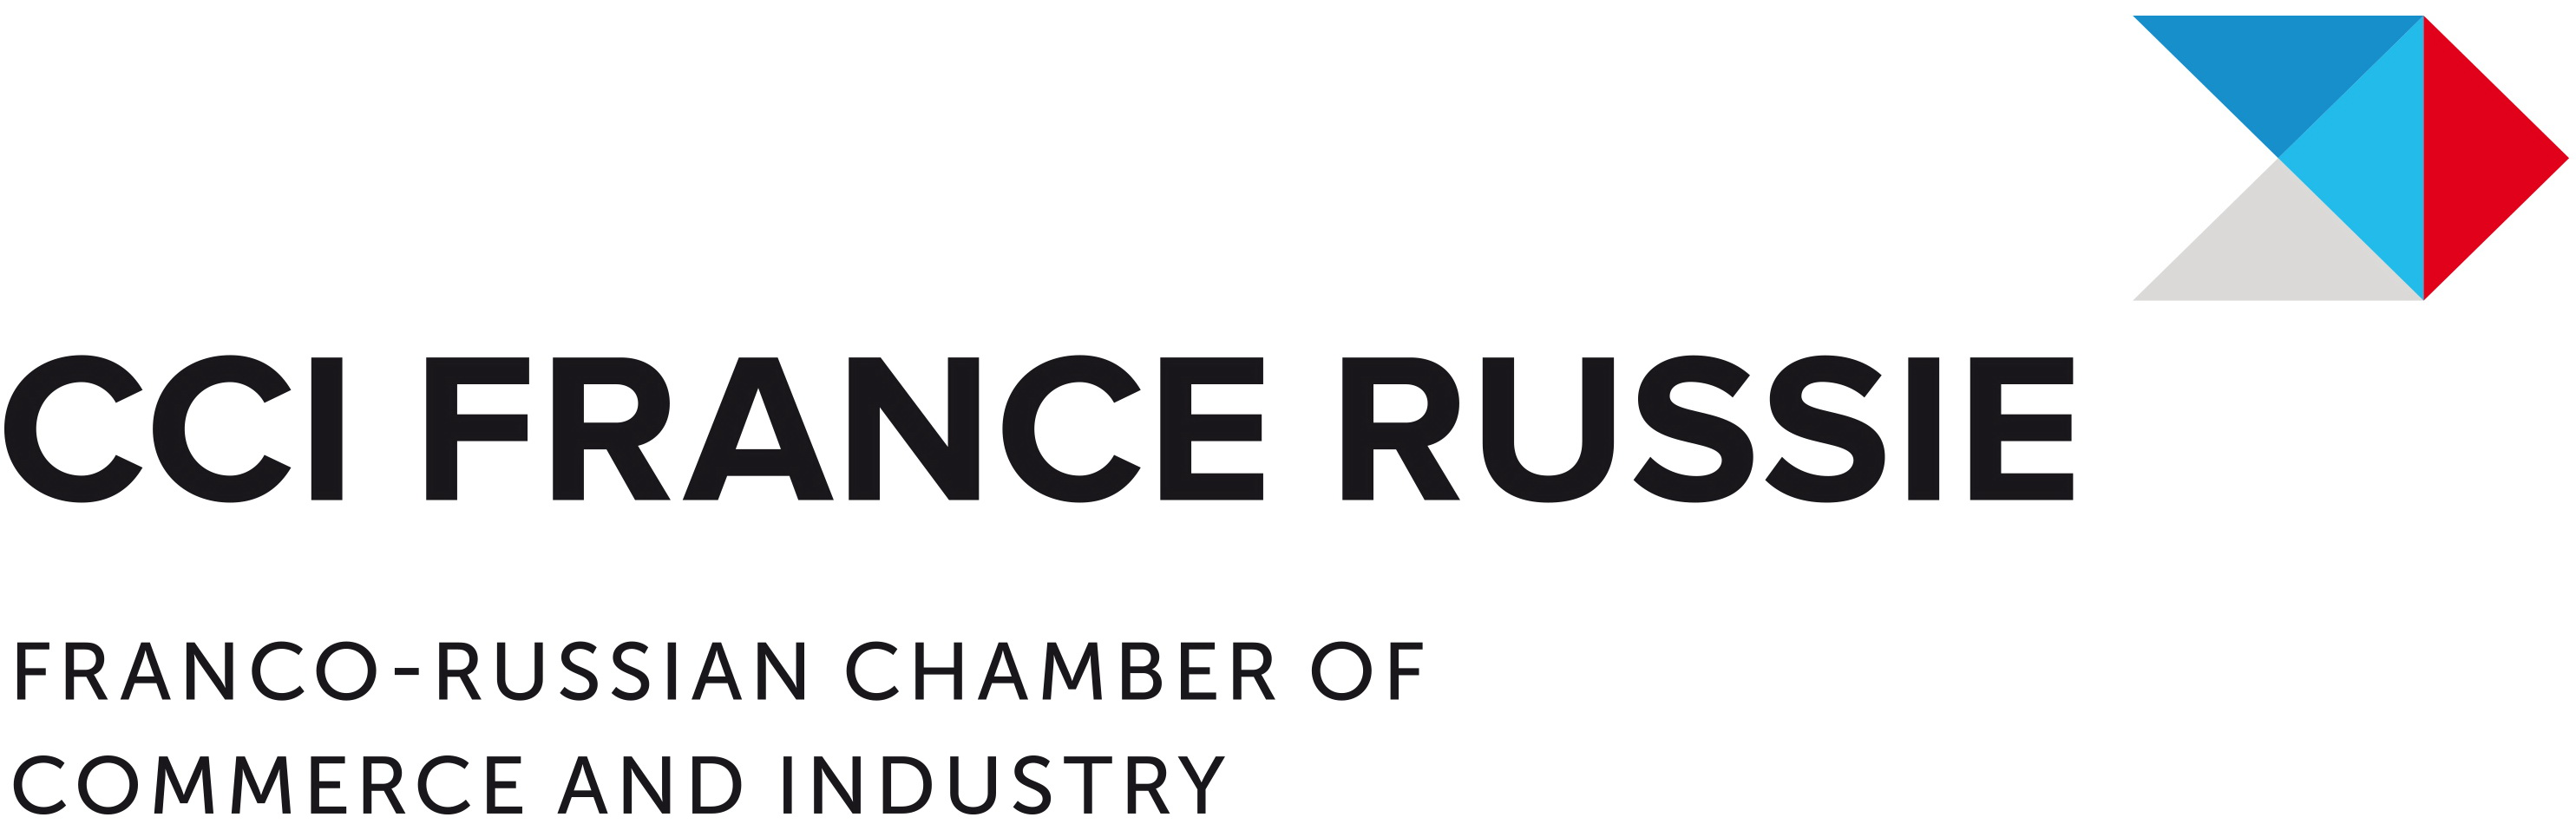 THE FRANCO-RUSSIAN CHAMBER OF COMMERCE AND INDUSTRY (CCI FRANCE RUSSIE)